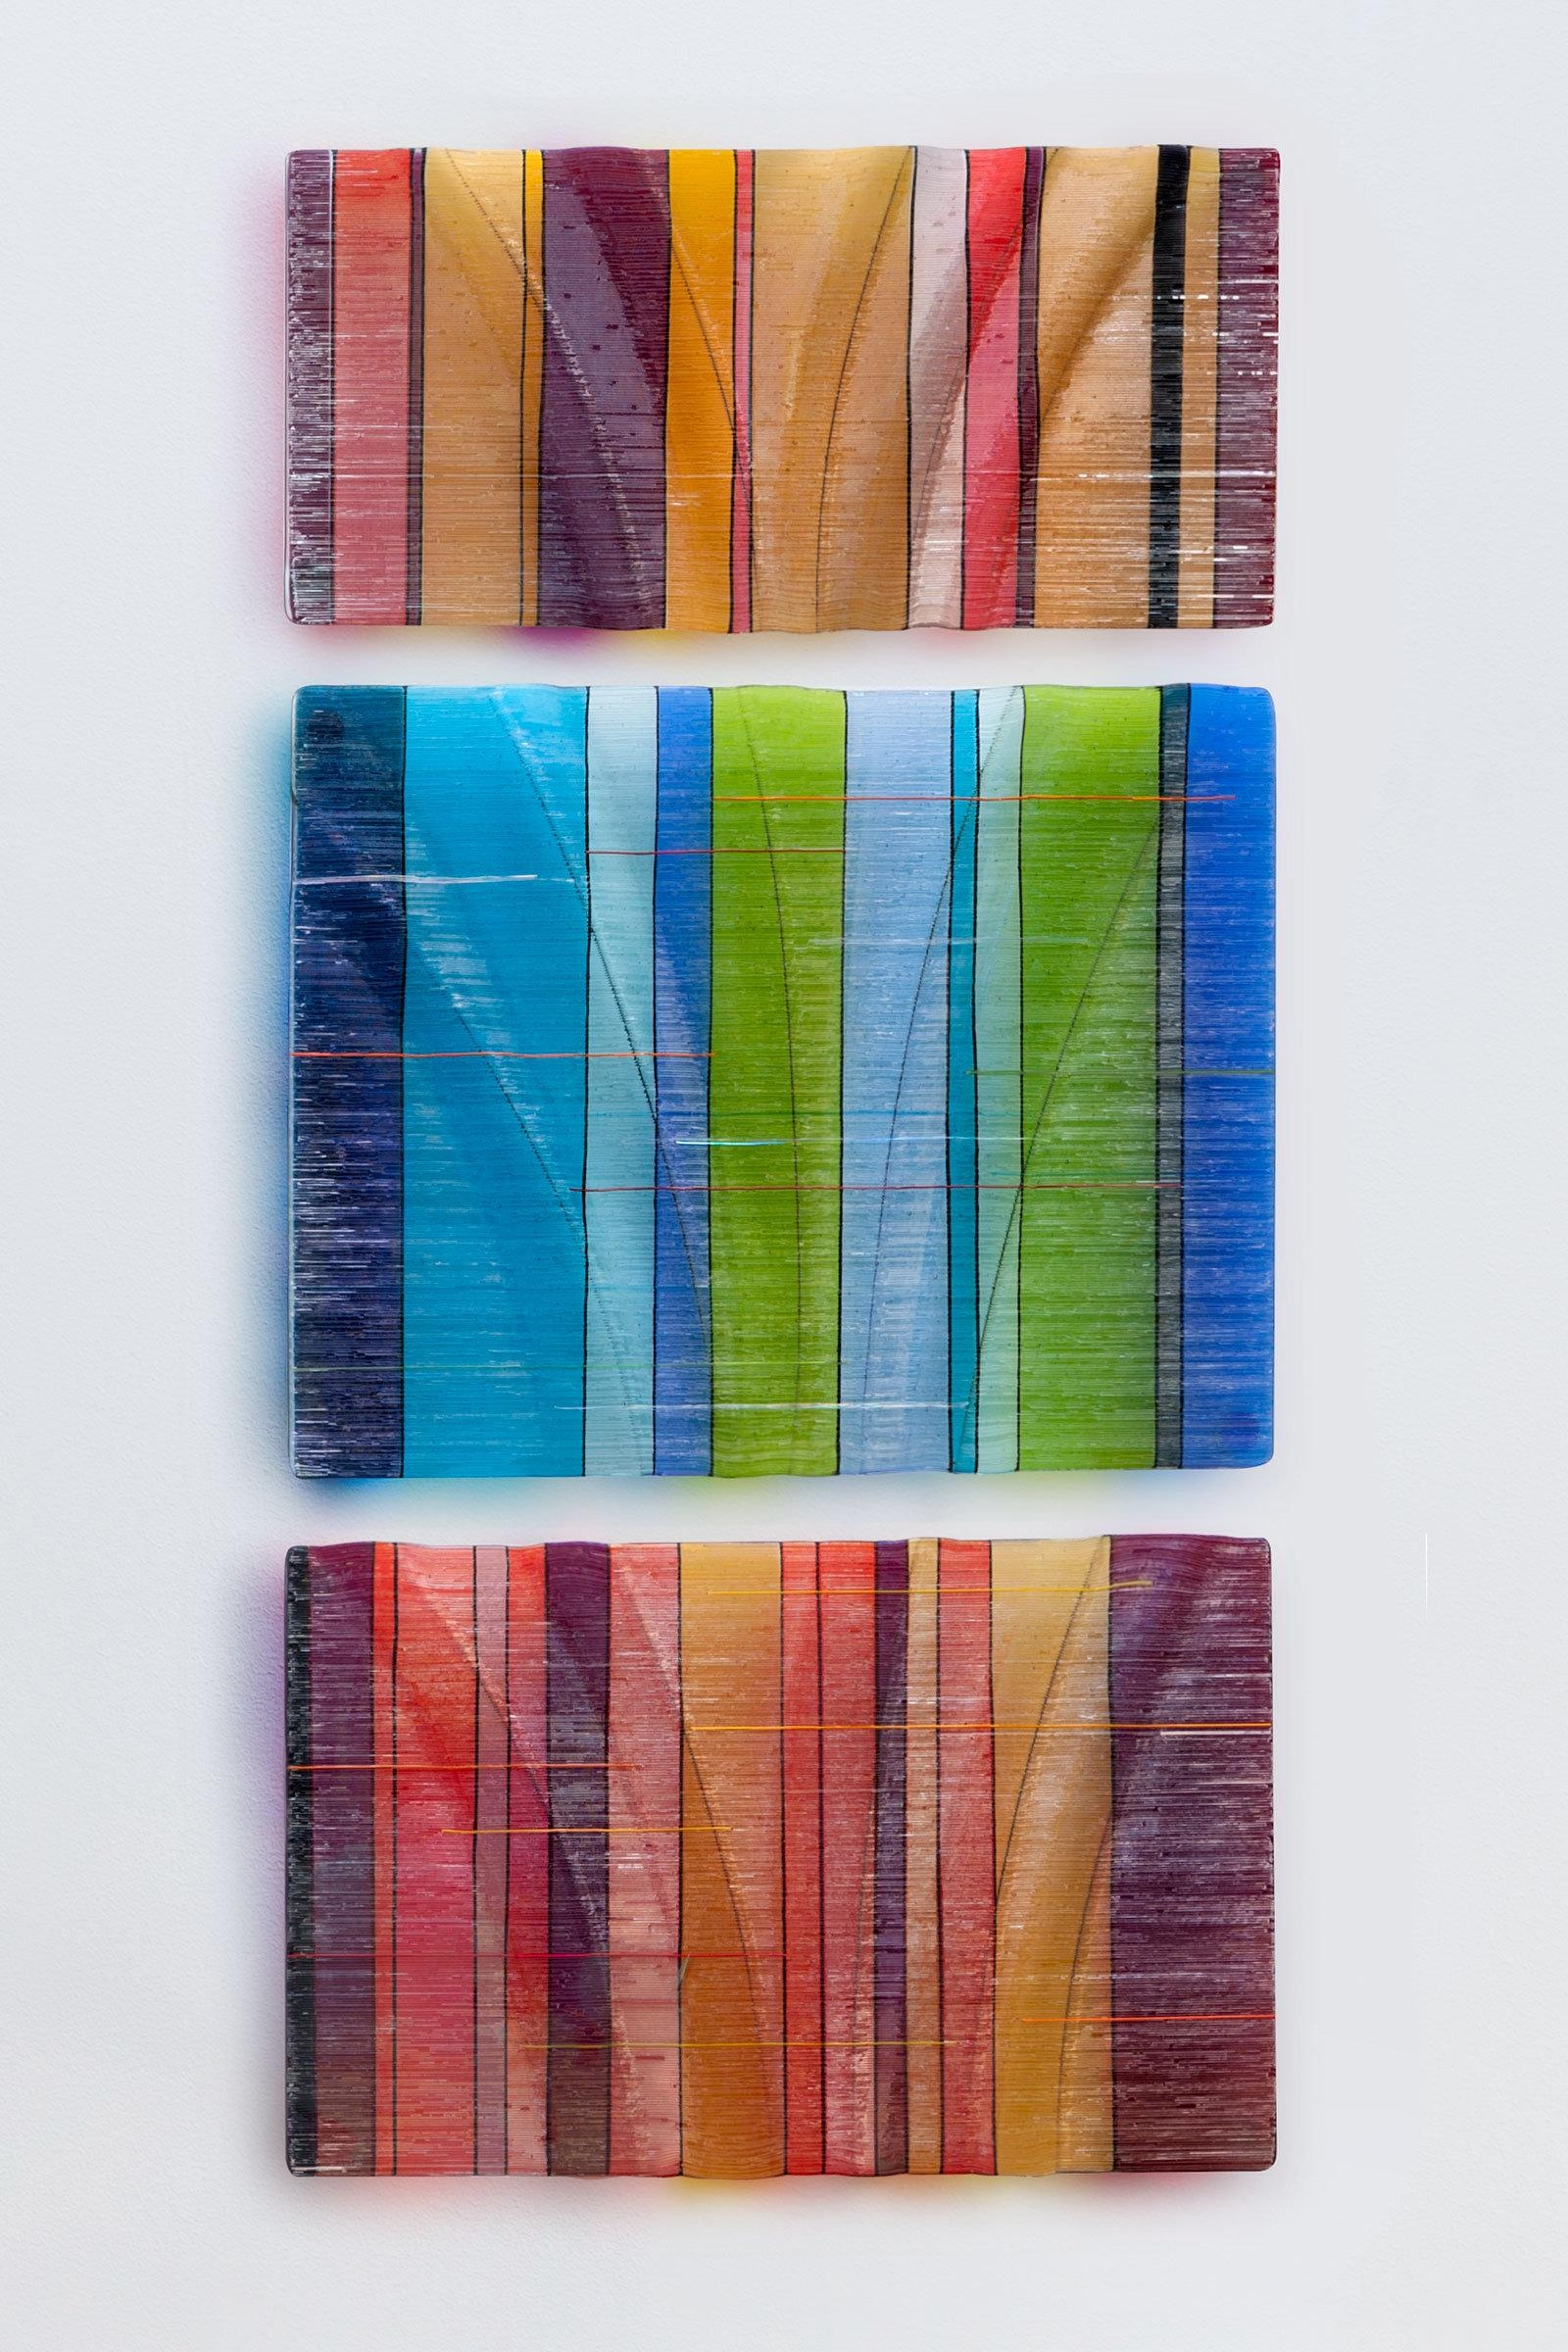 Glass Wall Artnorth American Artists | Artful Home With Regard To Fused Glass Wall Artwork (View 4 of 20)